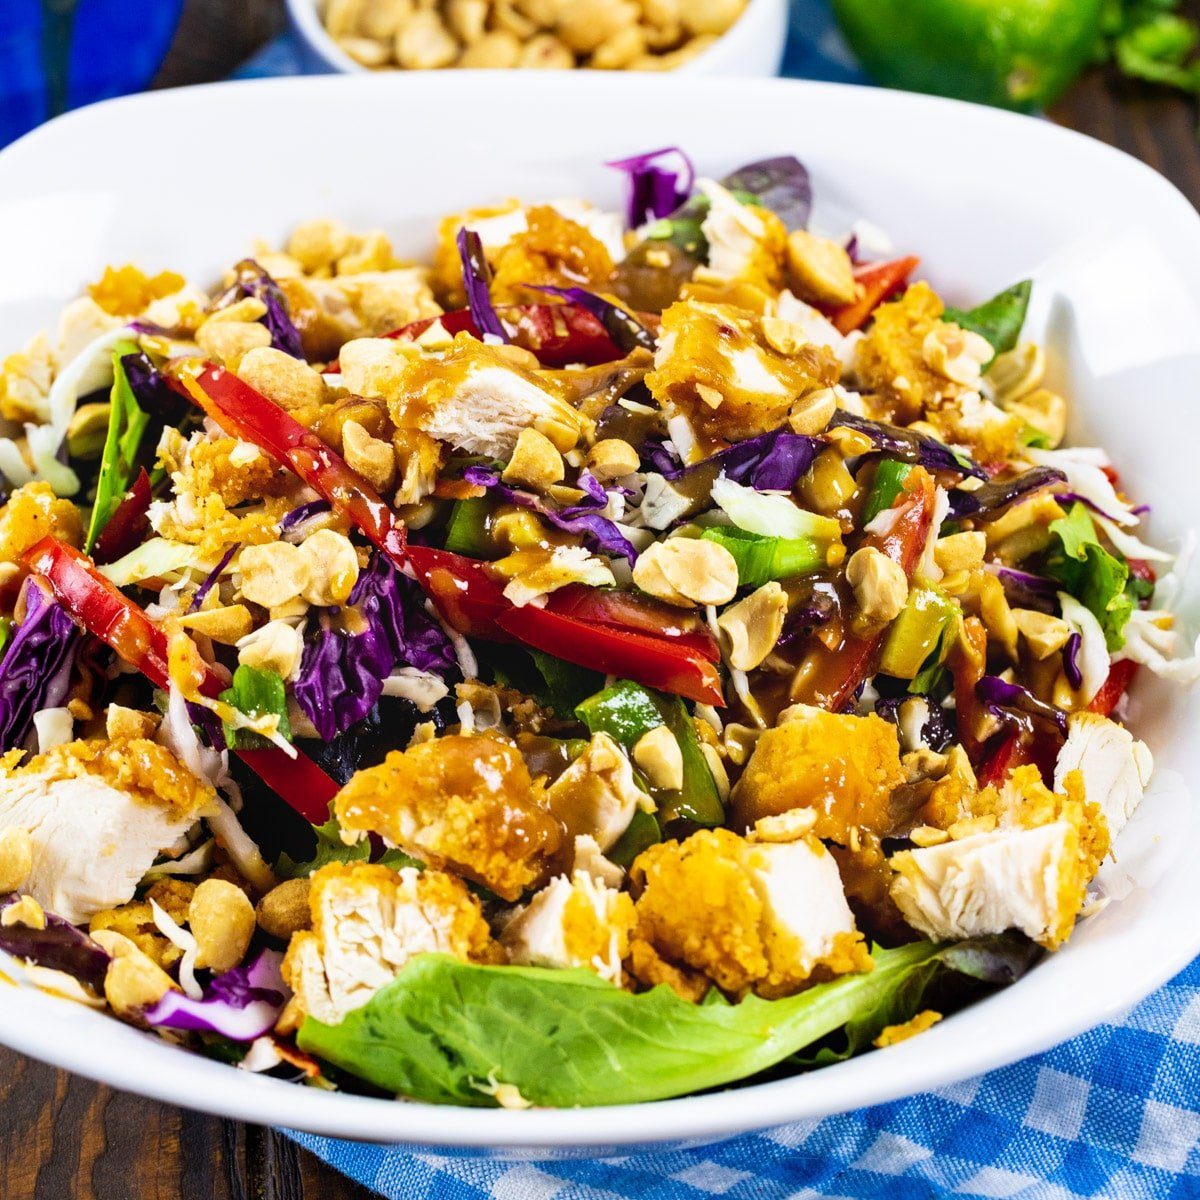 Chicken Tender-Peanut Chopped Salad in a bowl.